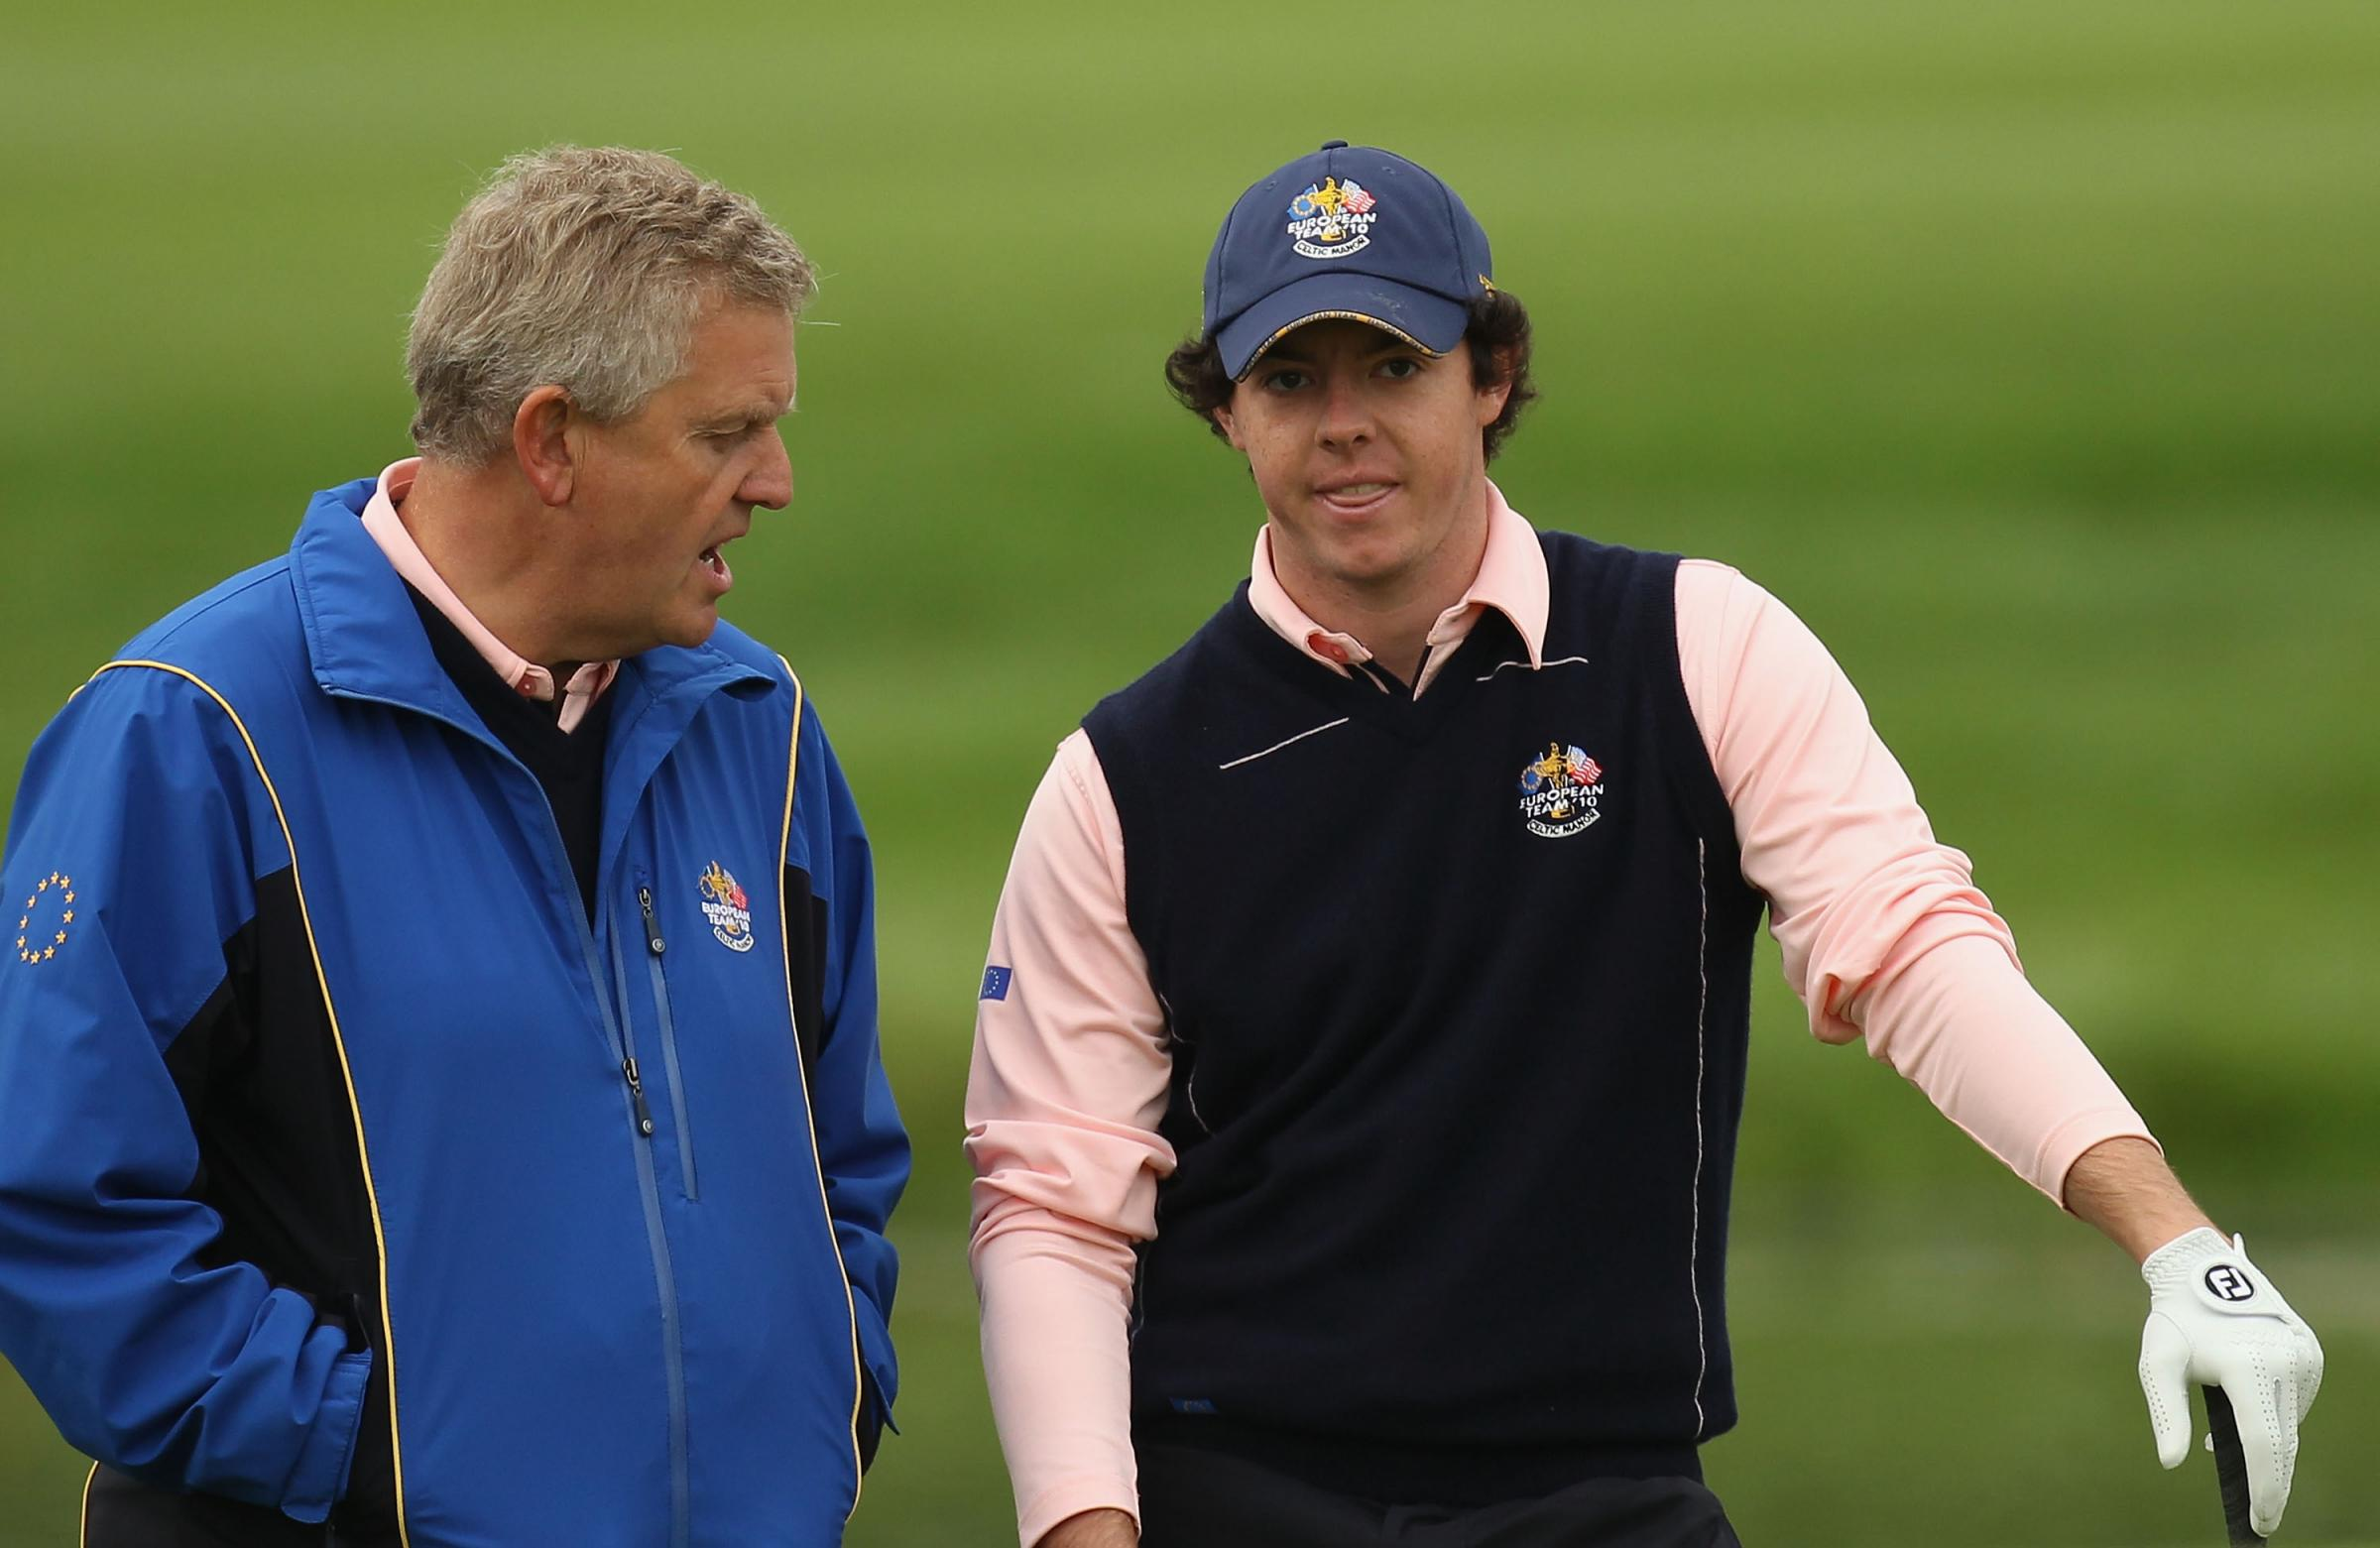 Colin Montgomerie and Rory McIlroy